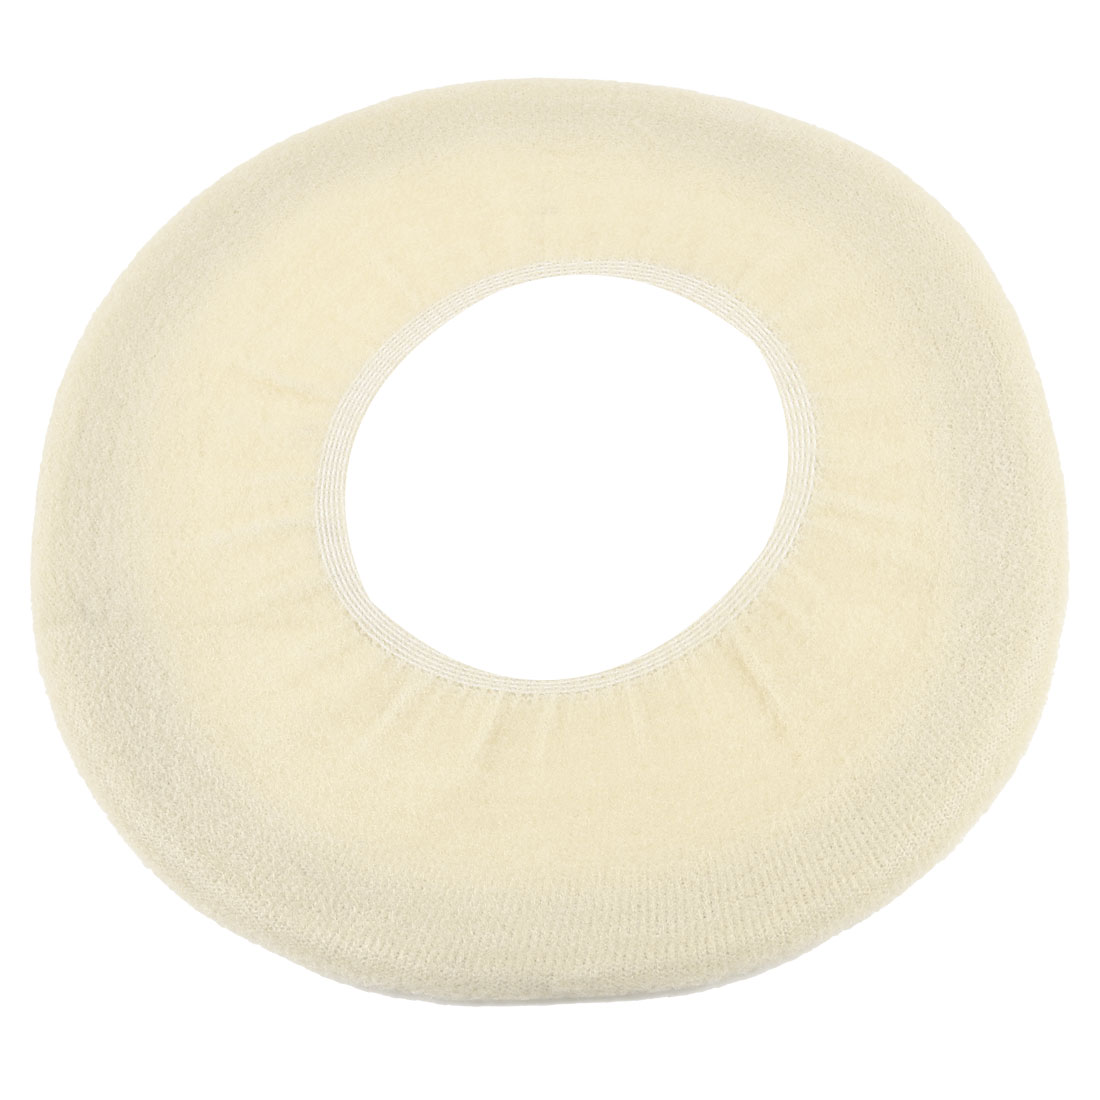 Bathroom Soft Fleece Stretch Toilet Seat Cover Cushion Pad off White